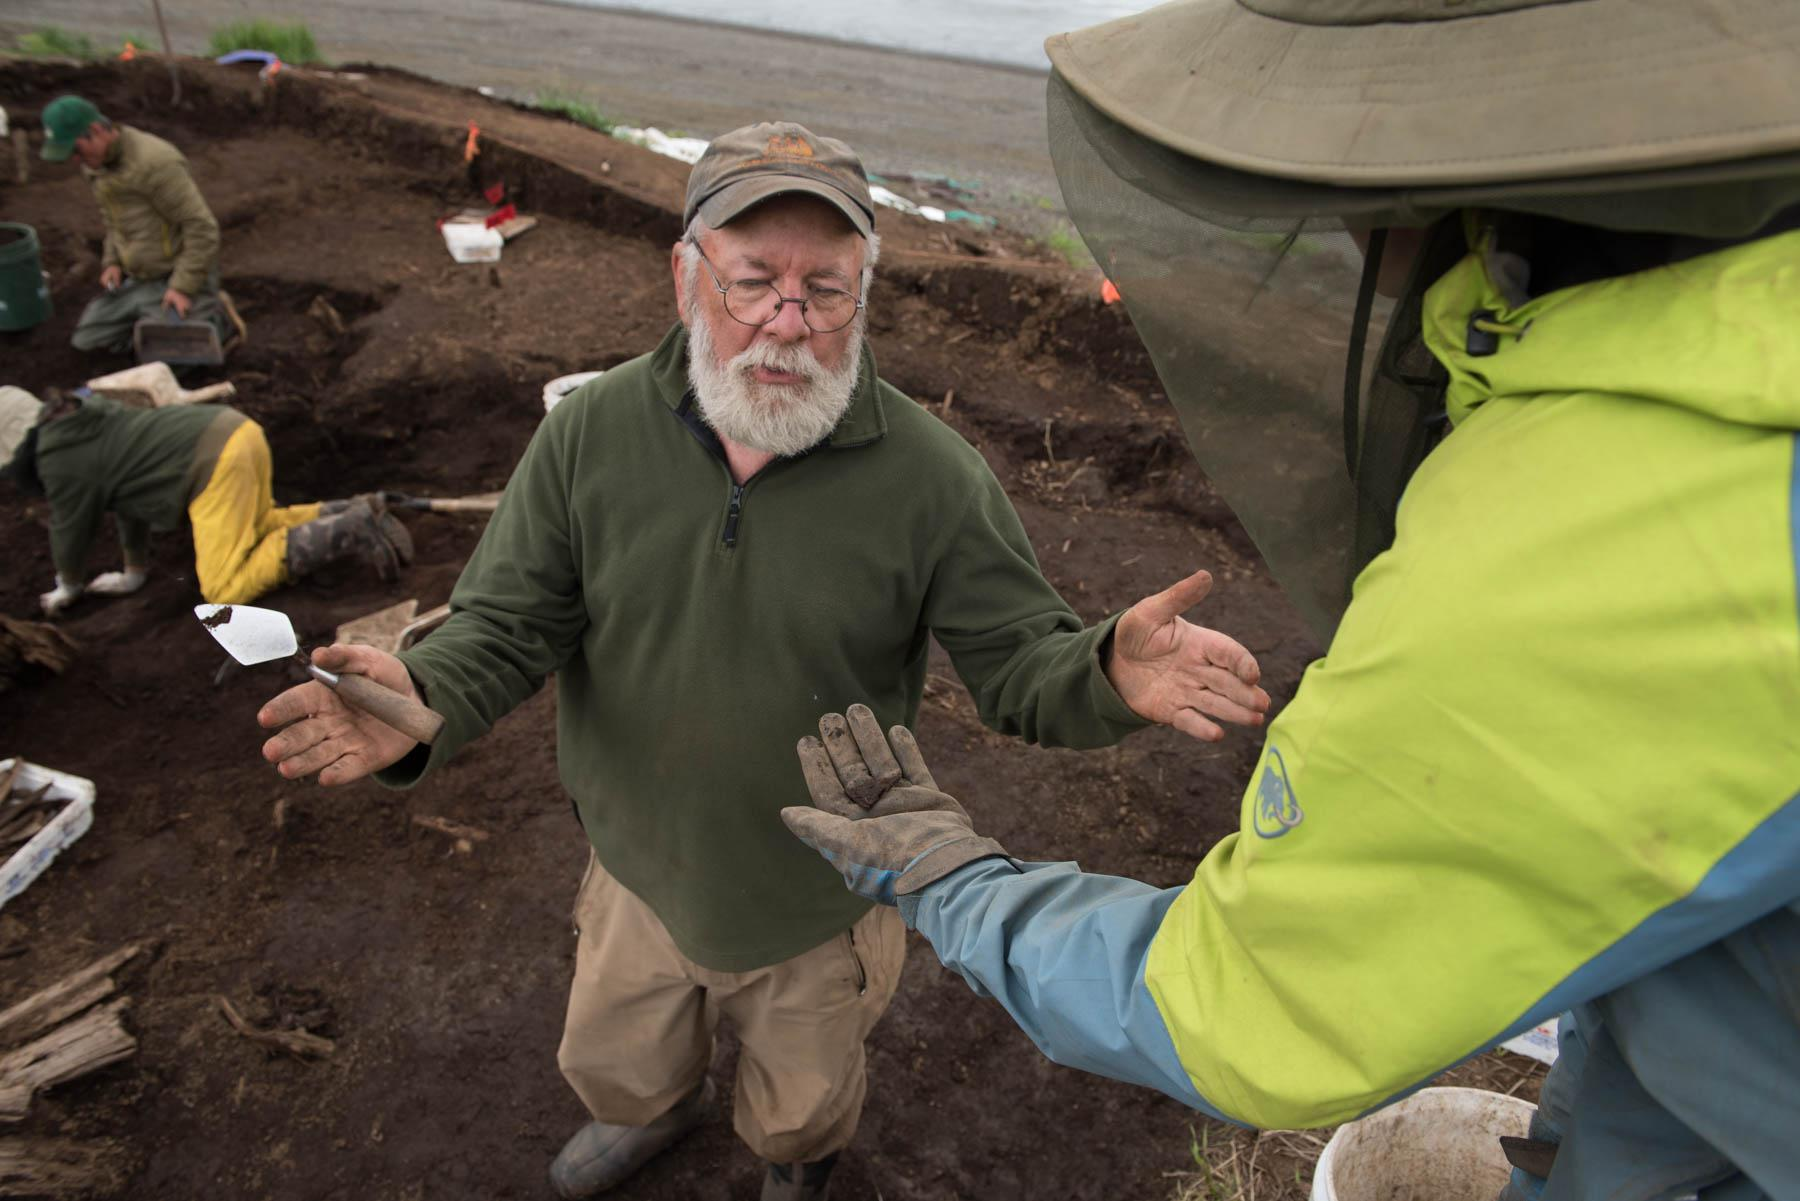 Dr. Rick Knecht explains July 24, 2018, the purpose of a small triangular piece of leather to student Lauren Phillips while digging at the Nunalleq site . The leather is likely caribou hide and was used to patch a larger piece of hide or clothing. (Photo by Katie Basile/KYUK)